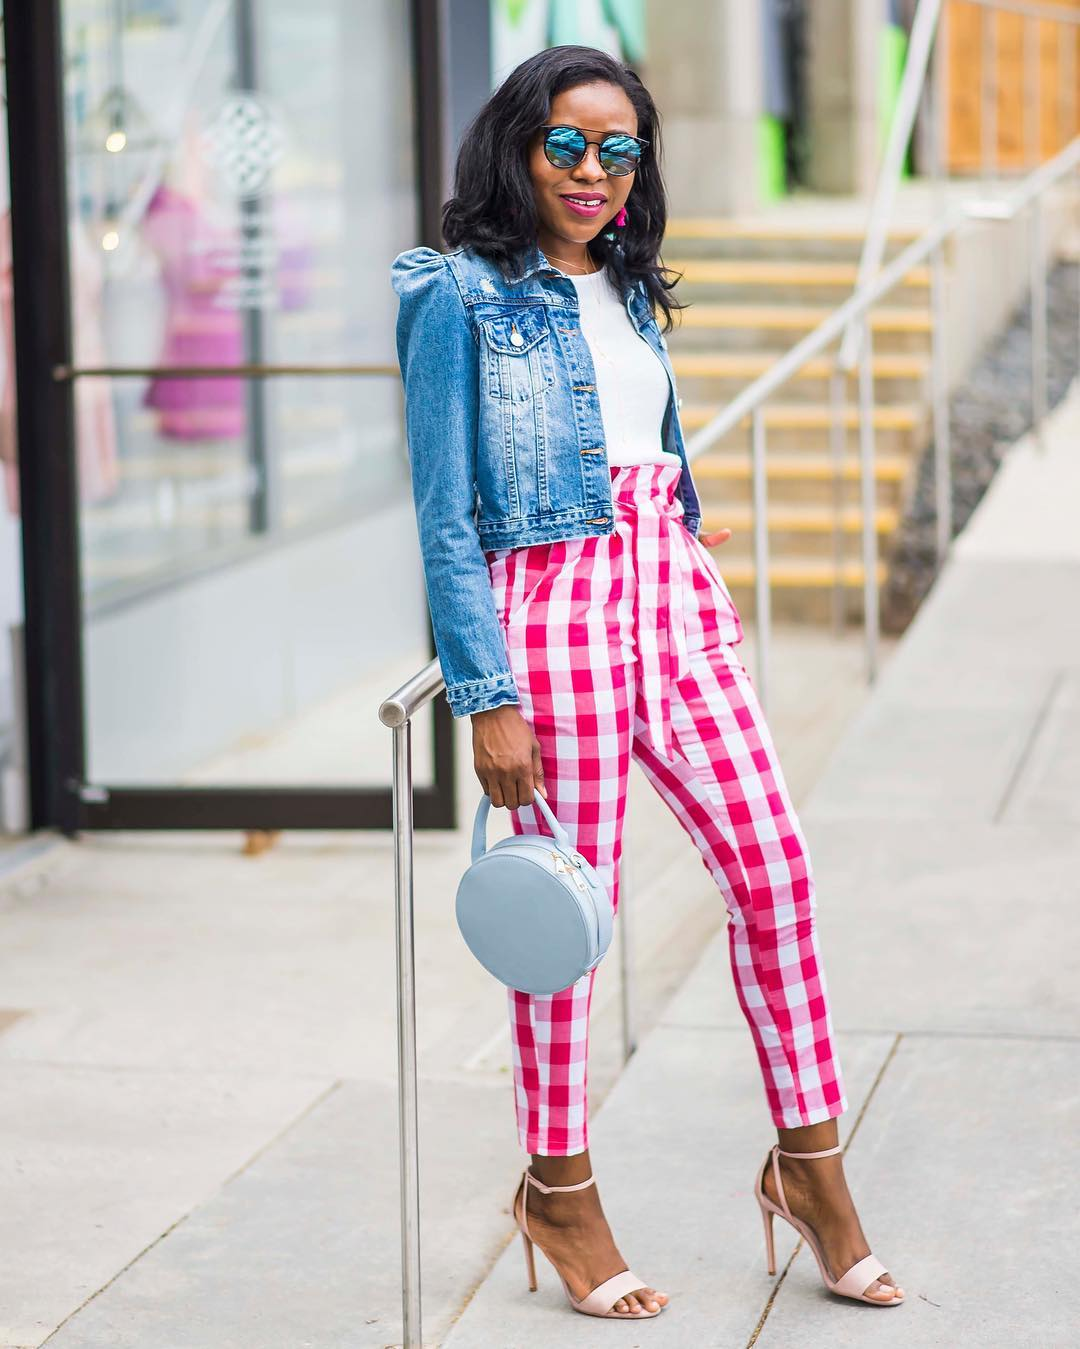 5 Approved Ways To Styling The Gingham Print